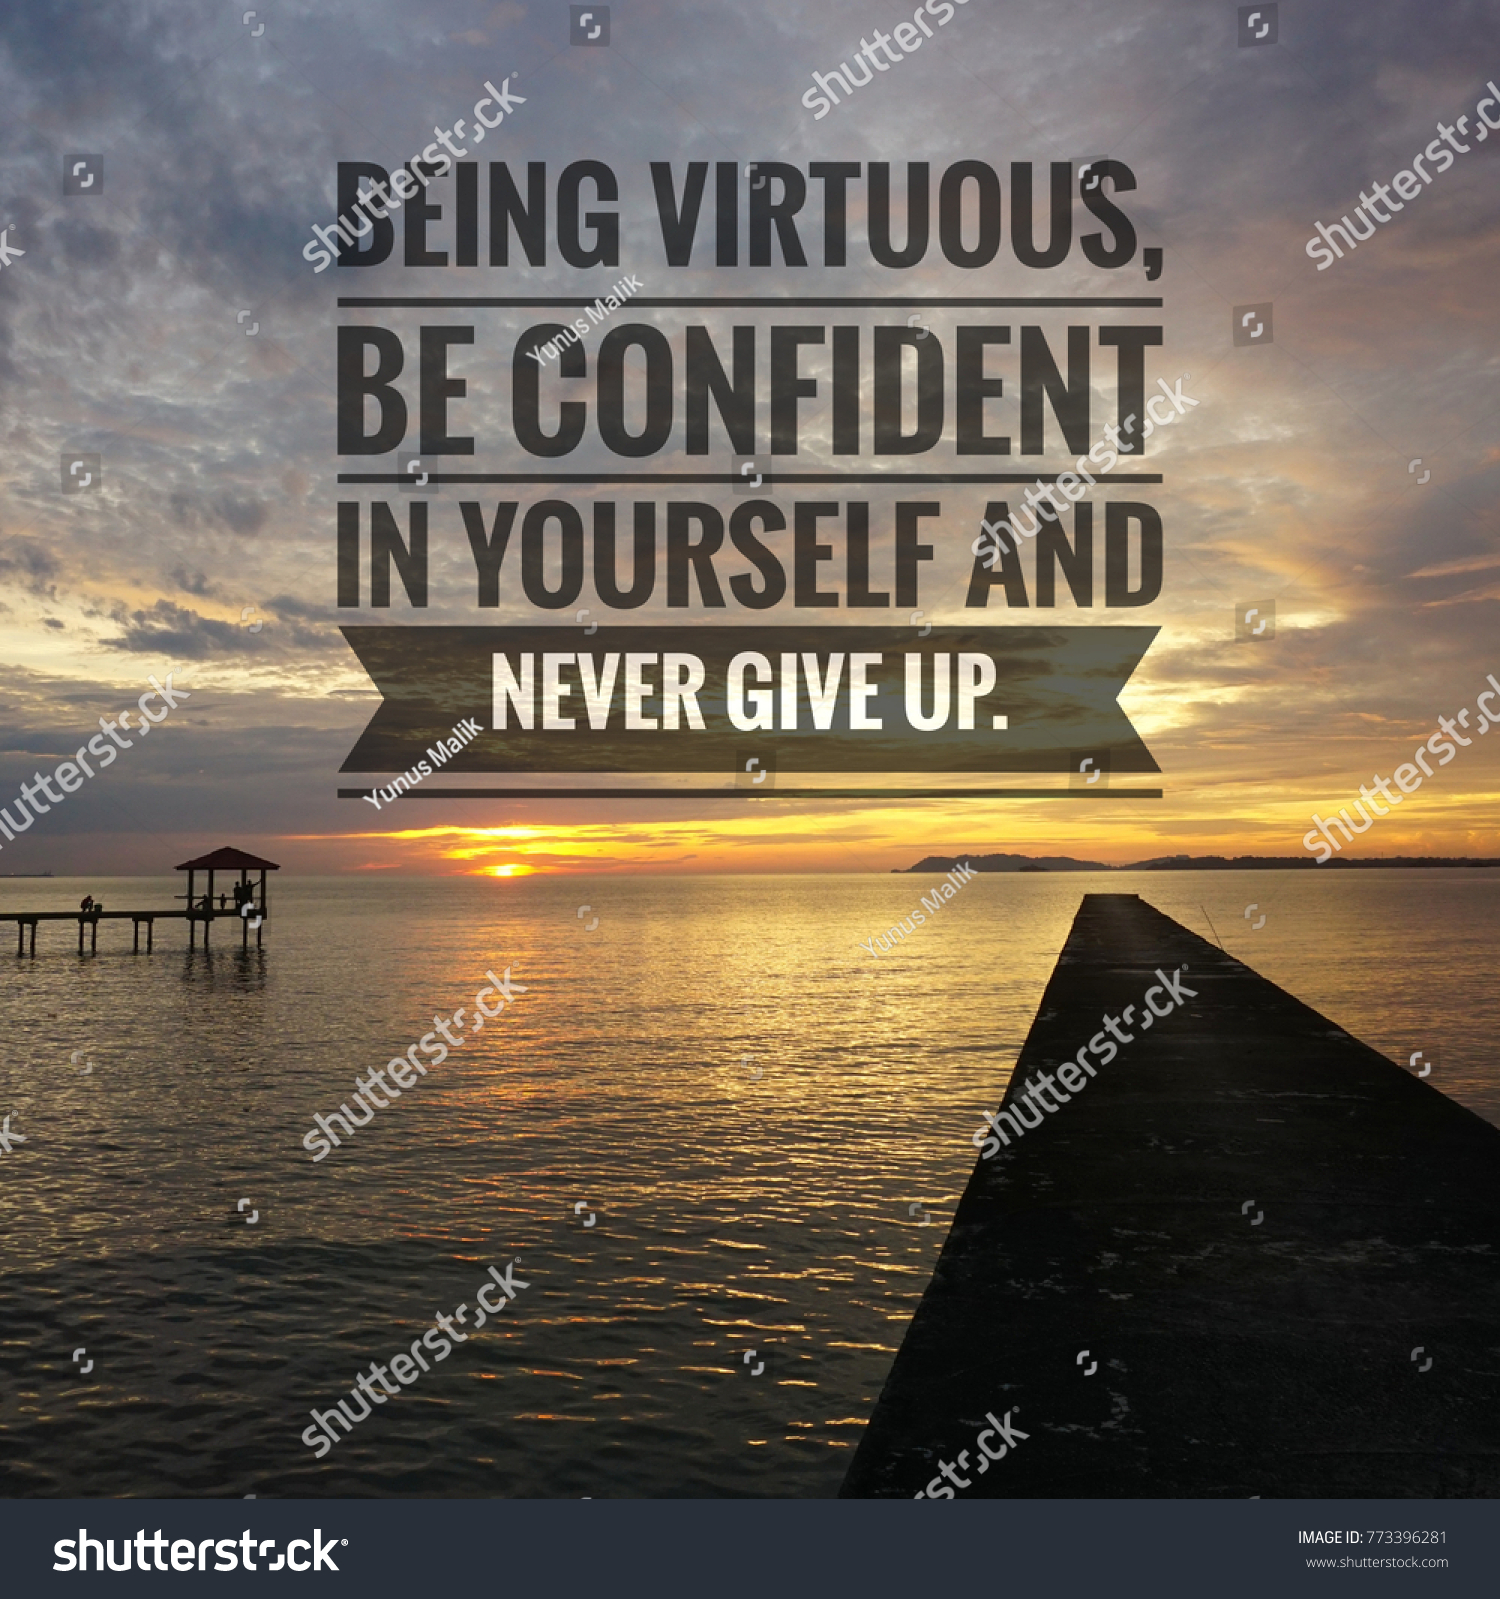 Quotes About Being Confident Inspiration Inspirational Motivating Quotes On Nature Background Stock Photo